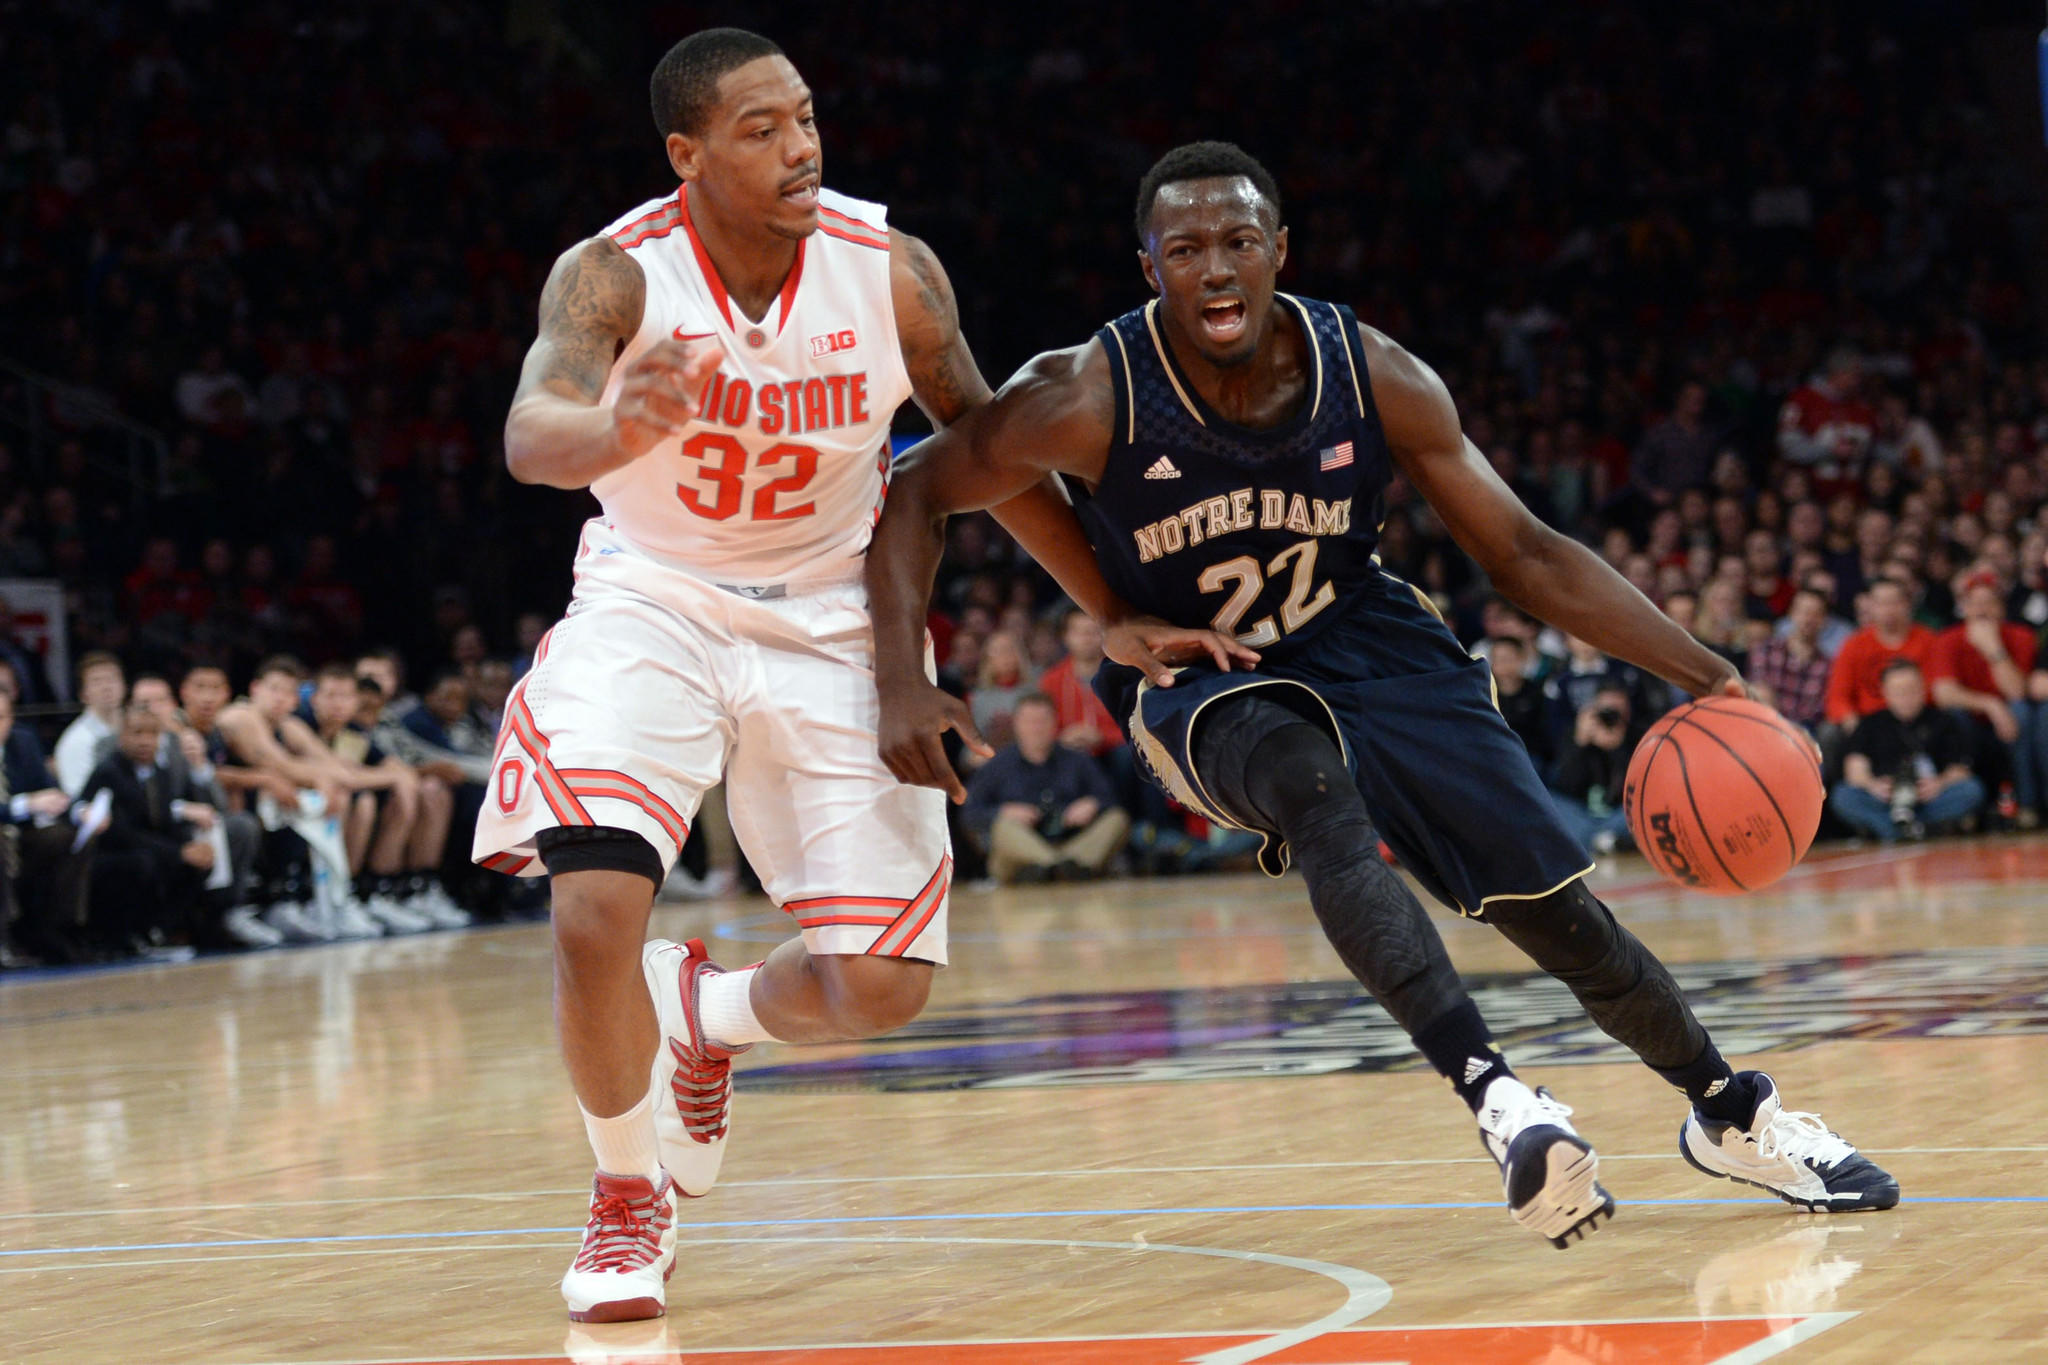 Ohio State Buckeyes guard Lenzelle Smith Jr. (32) stays with Notre Dame Fighting Irish guard Jerian Grant (22) during the first half of the Gotham Classic at Madison Square Garden.